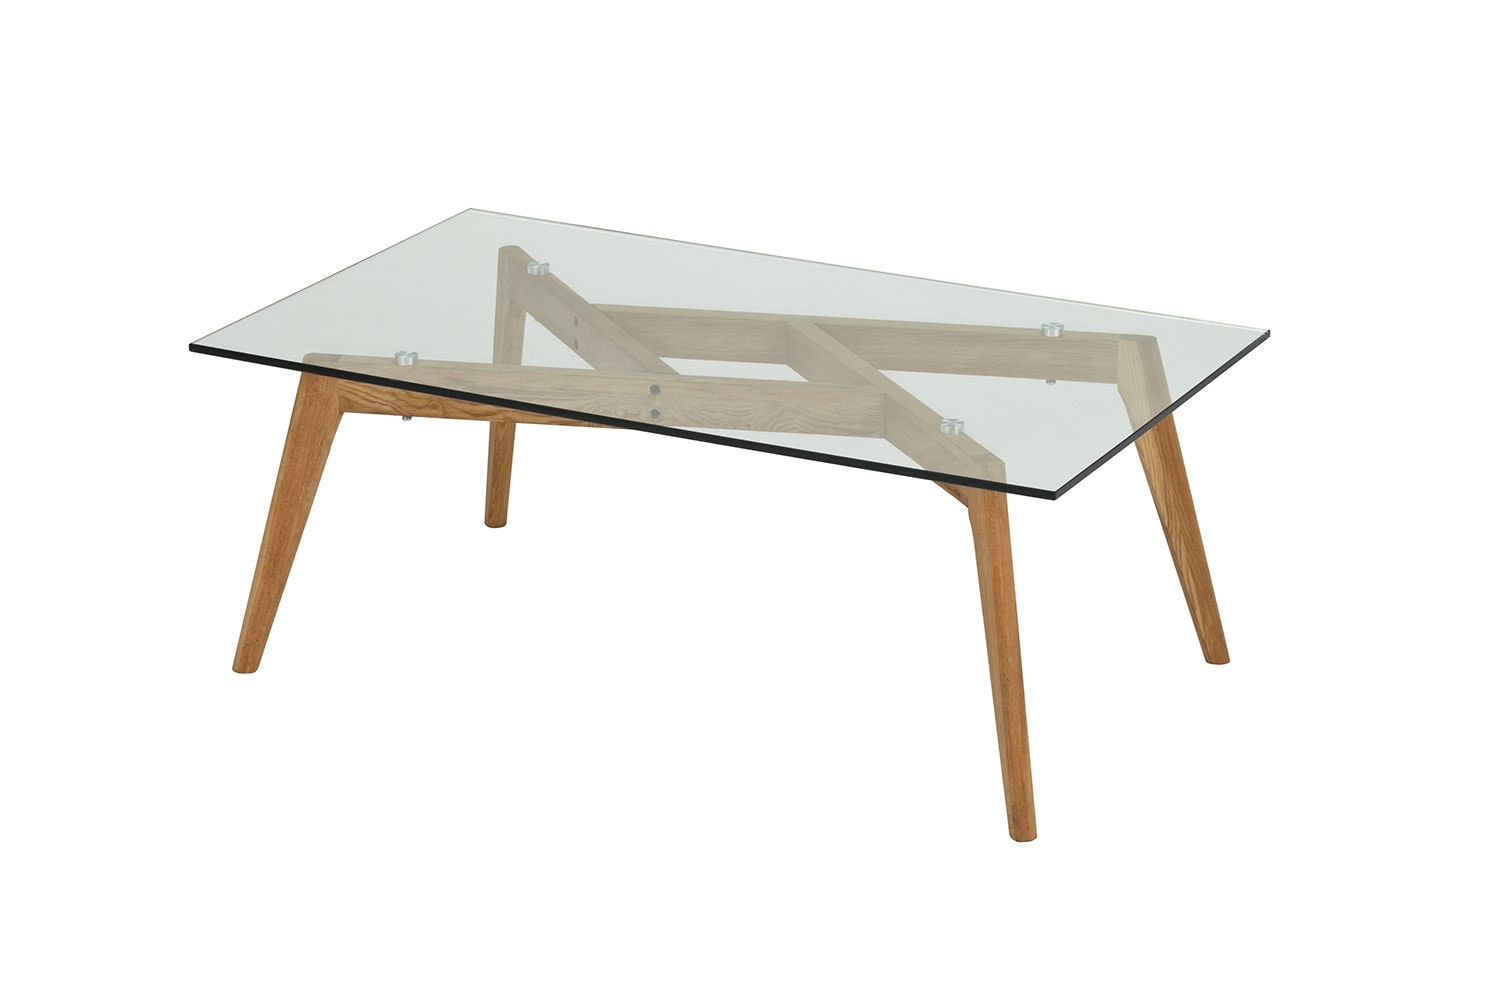 Barcelona Coffee Table By Paulack Furniture | Harvey Norman New Zealand